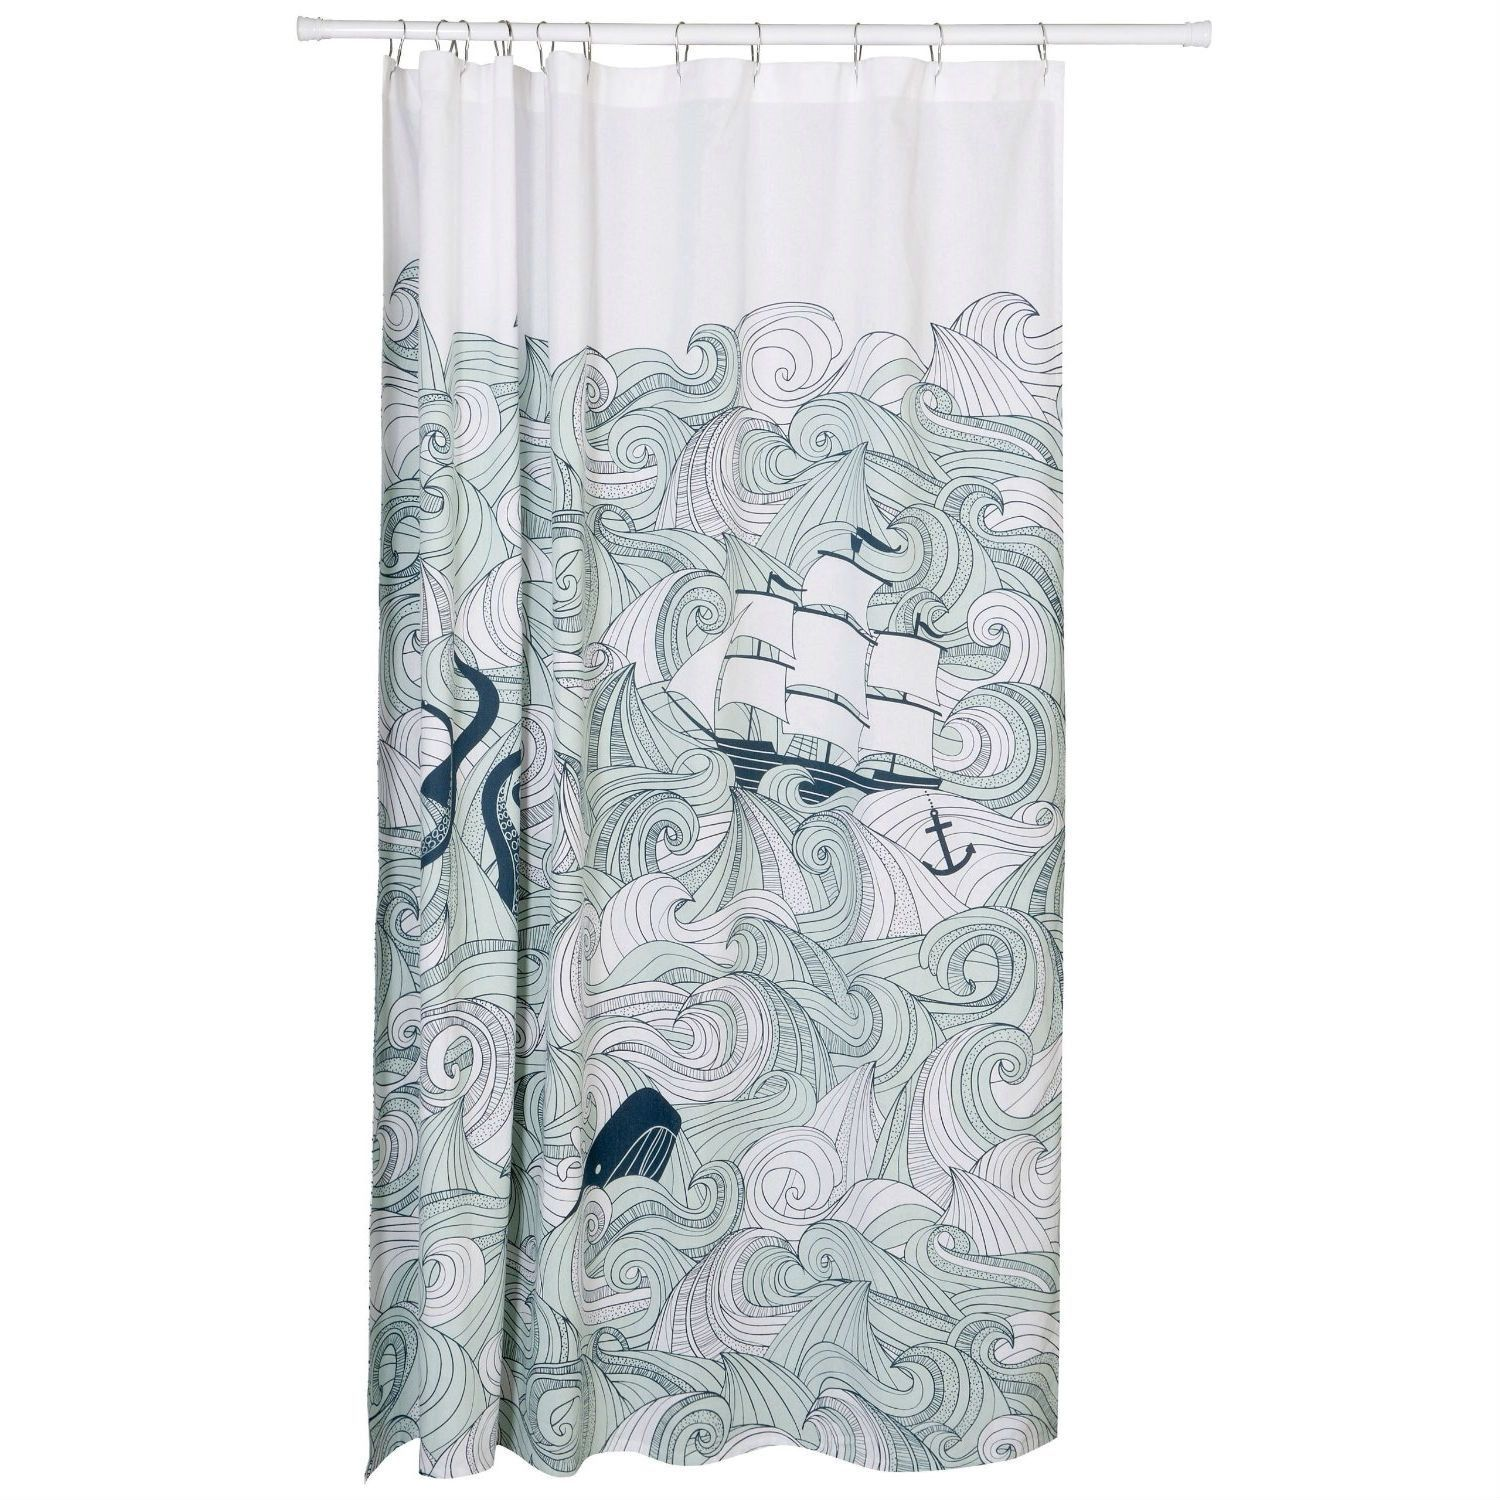 Mustache shower curtain - Cotton Shower Curtain With Waves Ship Anchor Octopus Mermaid